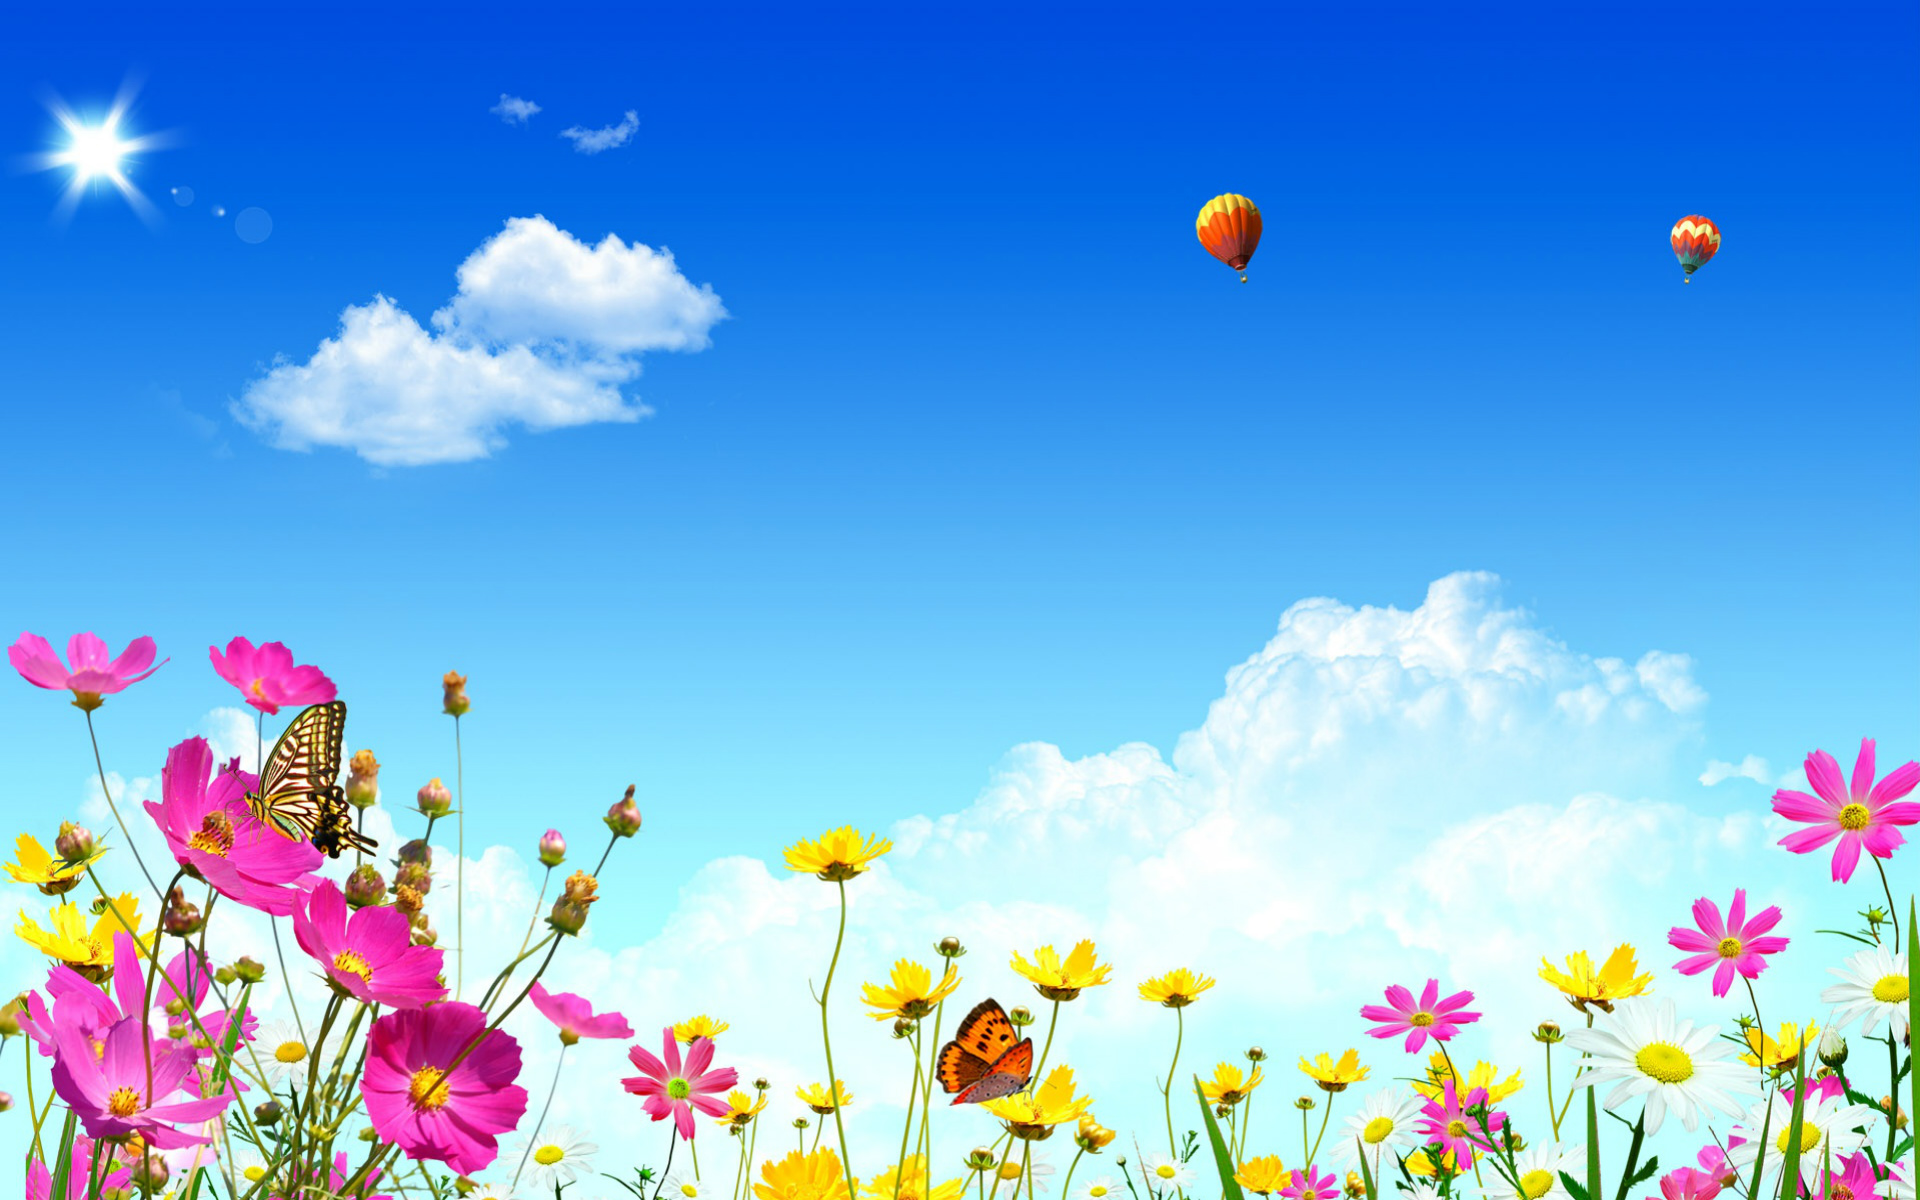 Is Under The Spring Wallpapers Category Of Hd Wallpapers 1920x1200